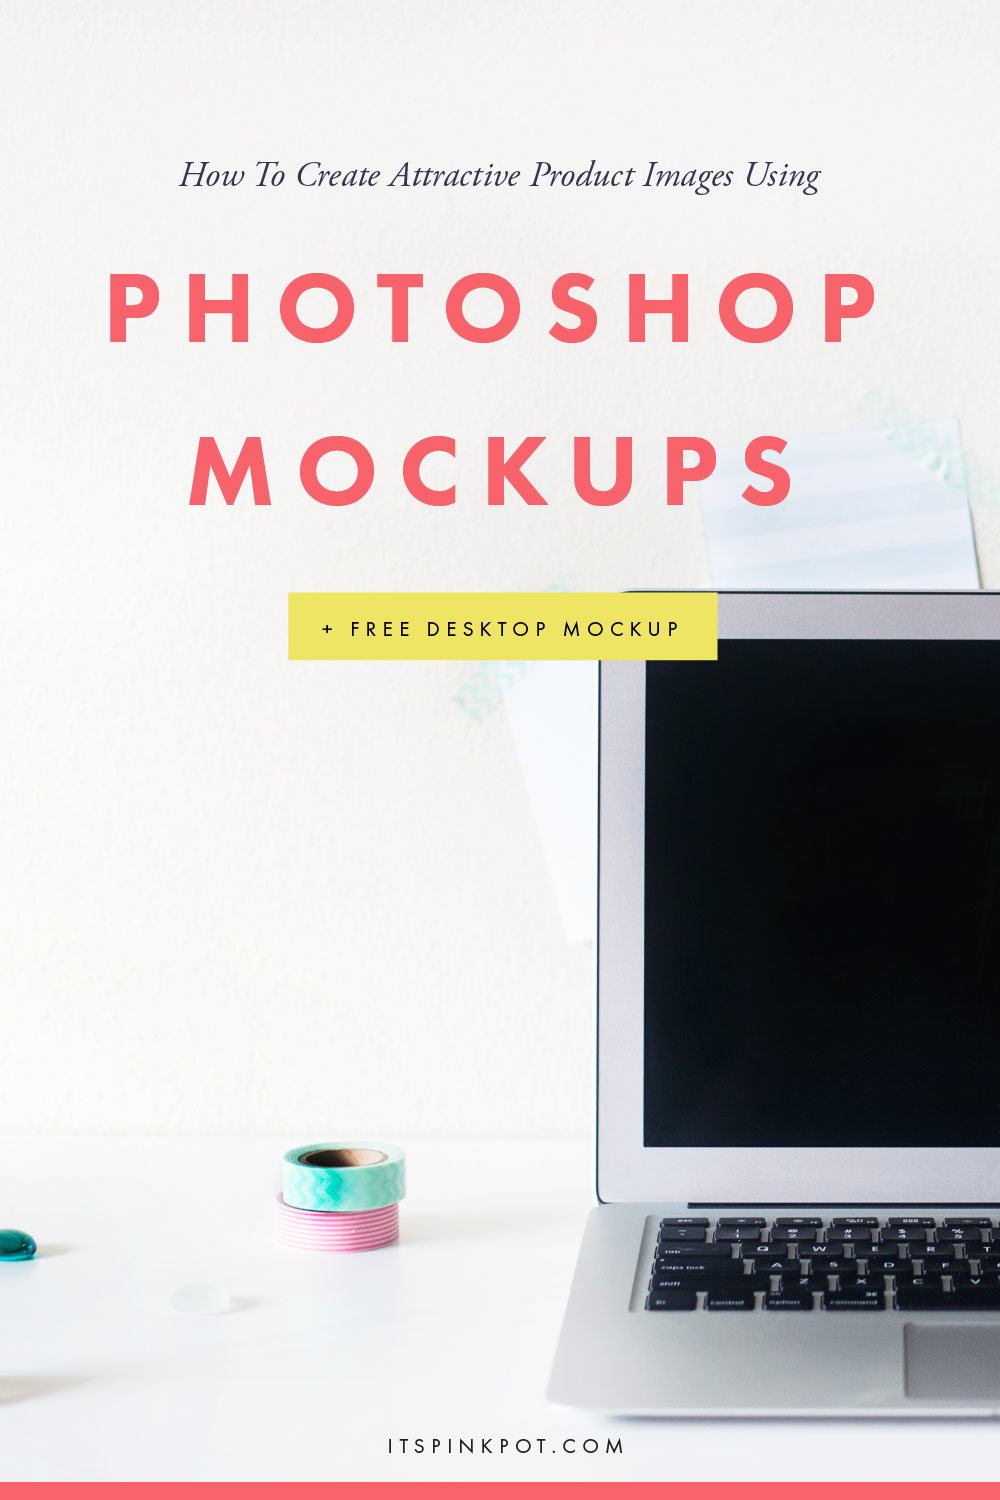 Here's a detailed tutorial on How To Use Mockups to create attractive product images. Plus I have a free Styled Desktop mockup for you!! Woohoo. Click here to download! let's dive right into it.